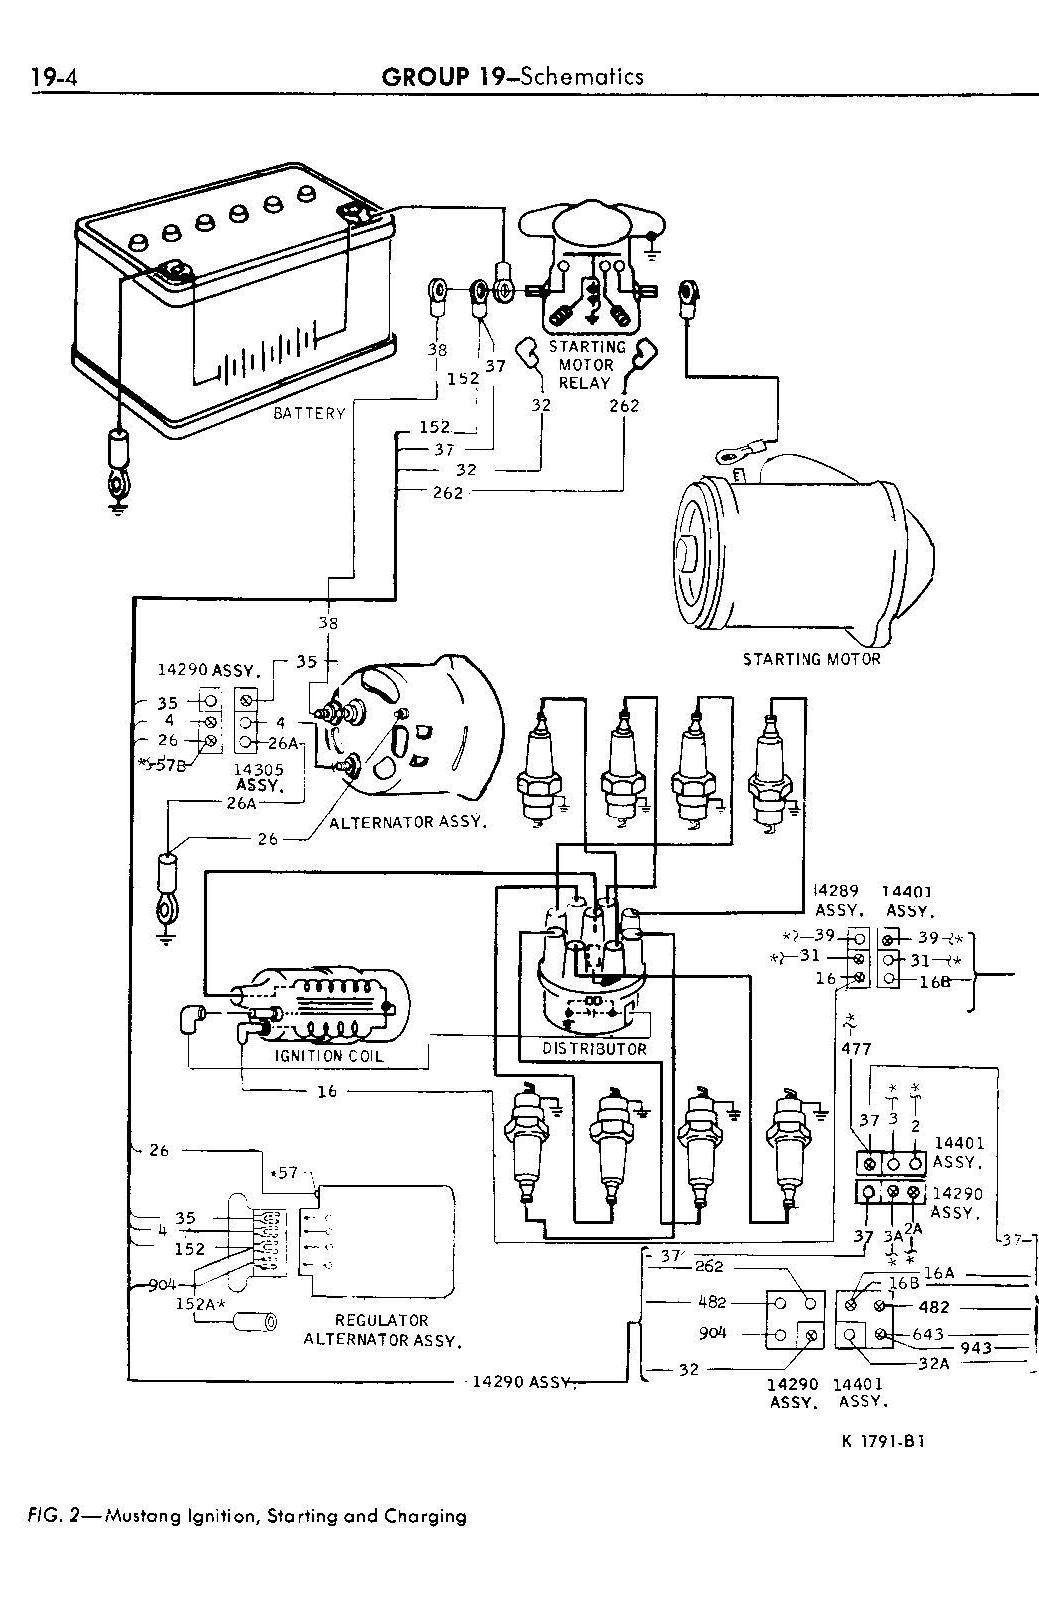 b m neutral safety switch wiring diagram